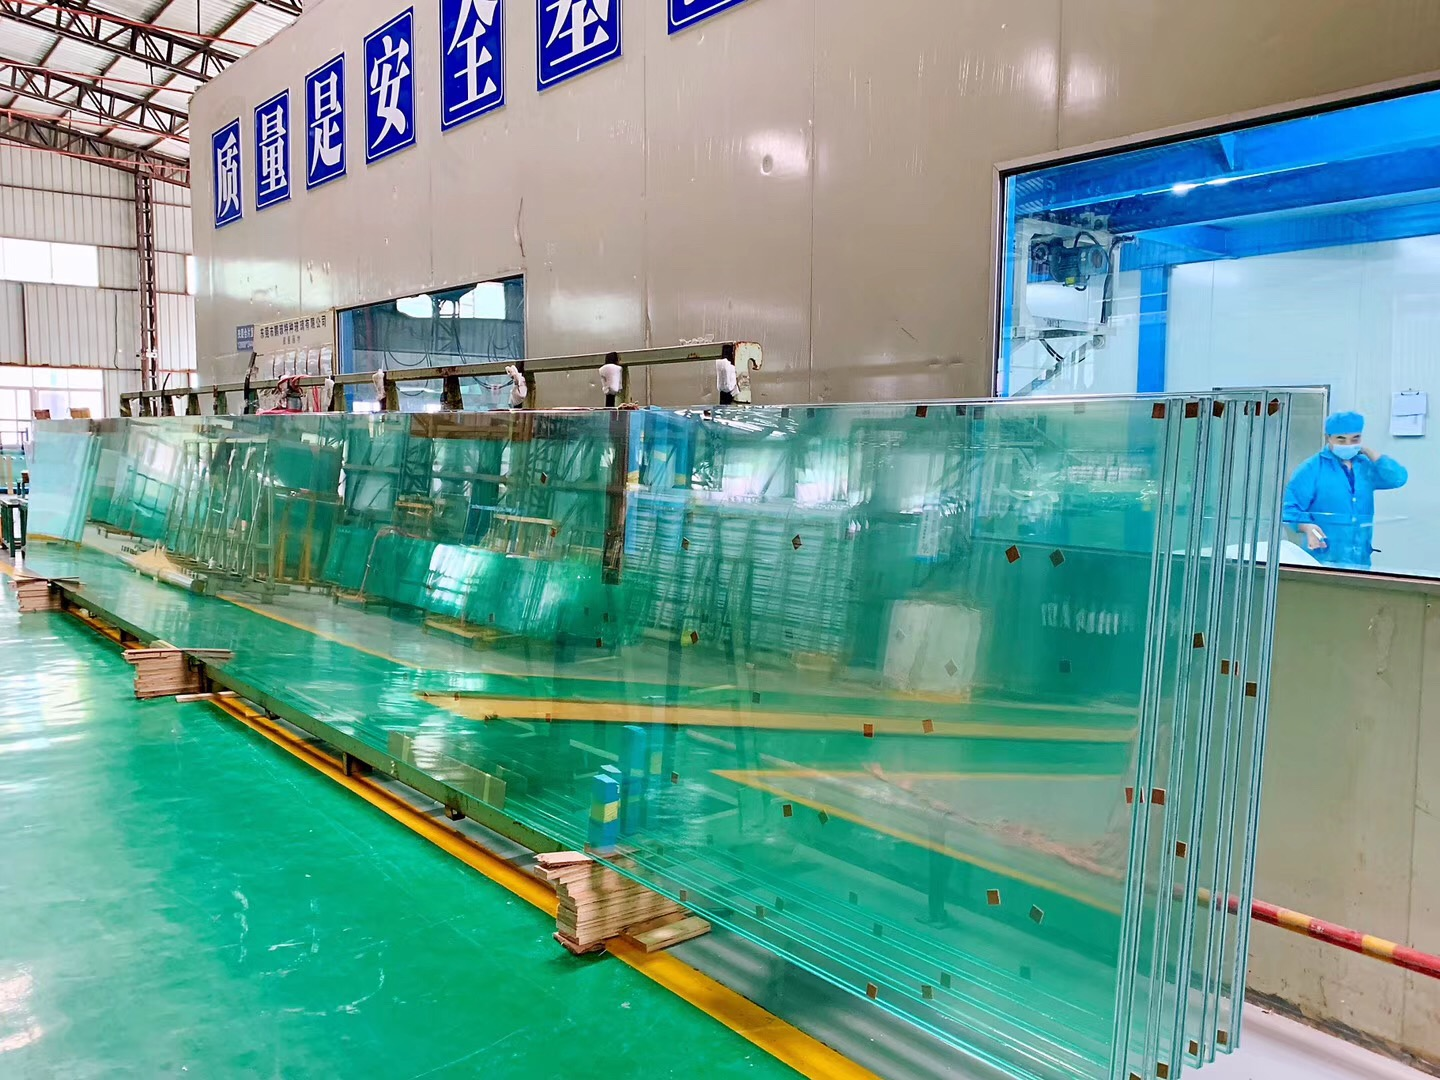 15mm+15mm low iron laminated glass, 15+15 ESG VSG extra clear, super white tempered laminated glass,15+15mm low iron ESG VSG, 15+15 Starphire laminated glass, jumbo size glass